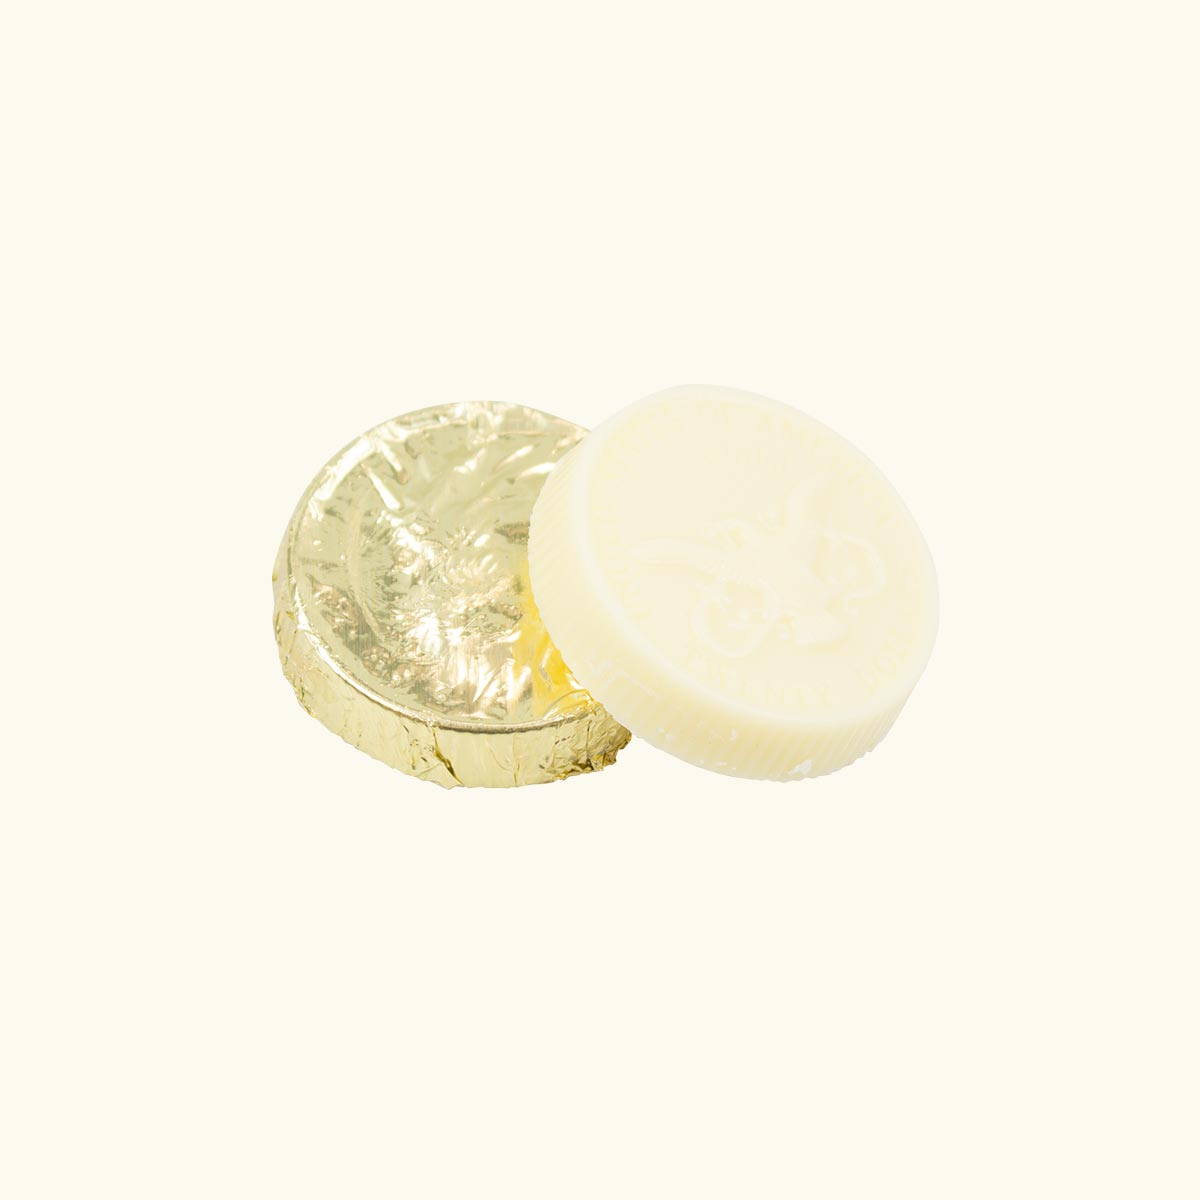 Ethel_M_Chocolates_Solid_White_Chocolate_Coin_Shaped_Individual_Piece_Wrapped_And_Unwrapped_Front_View